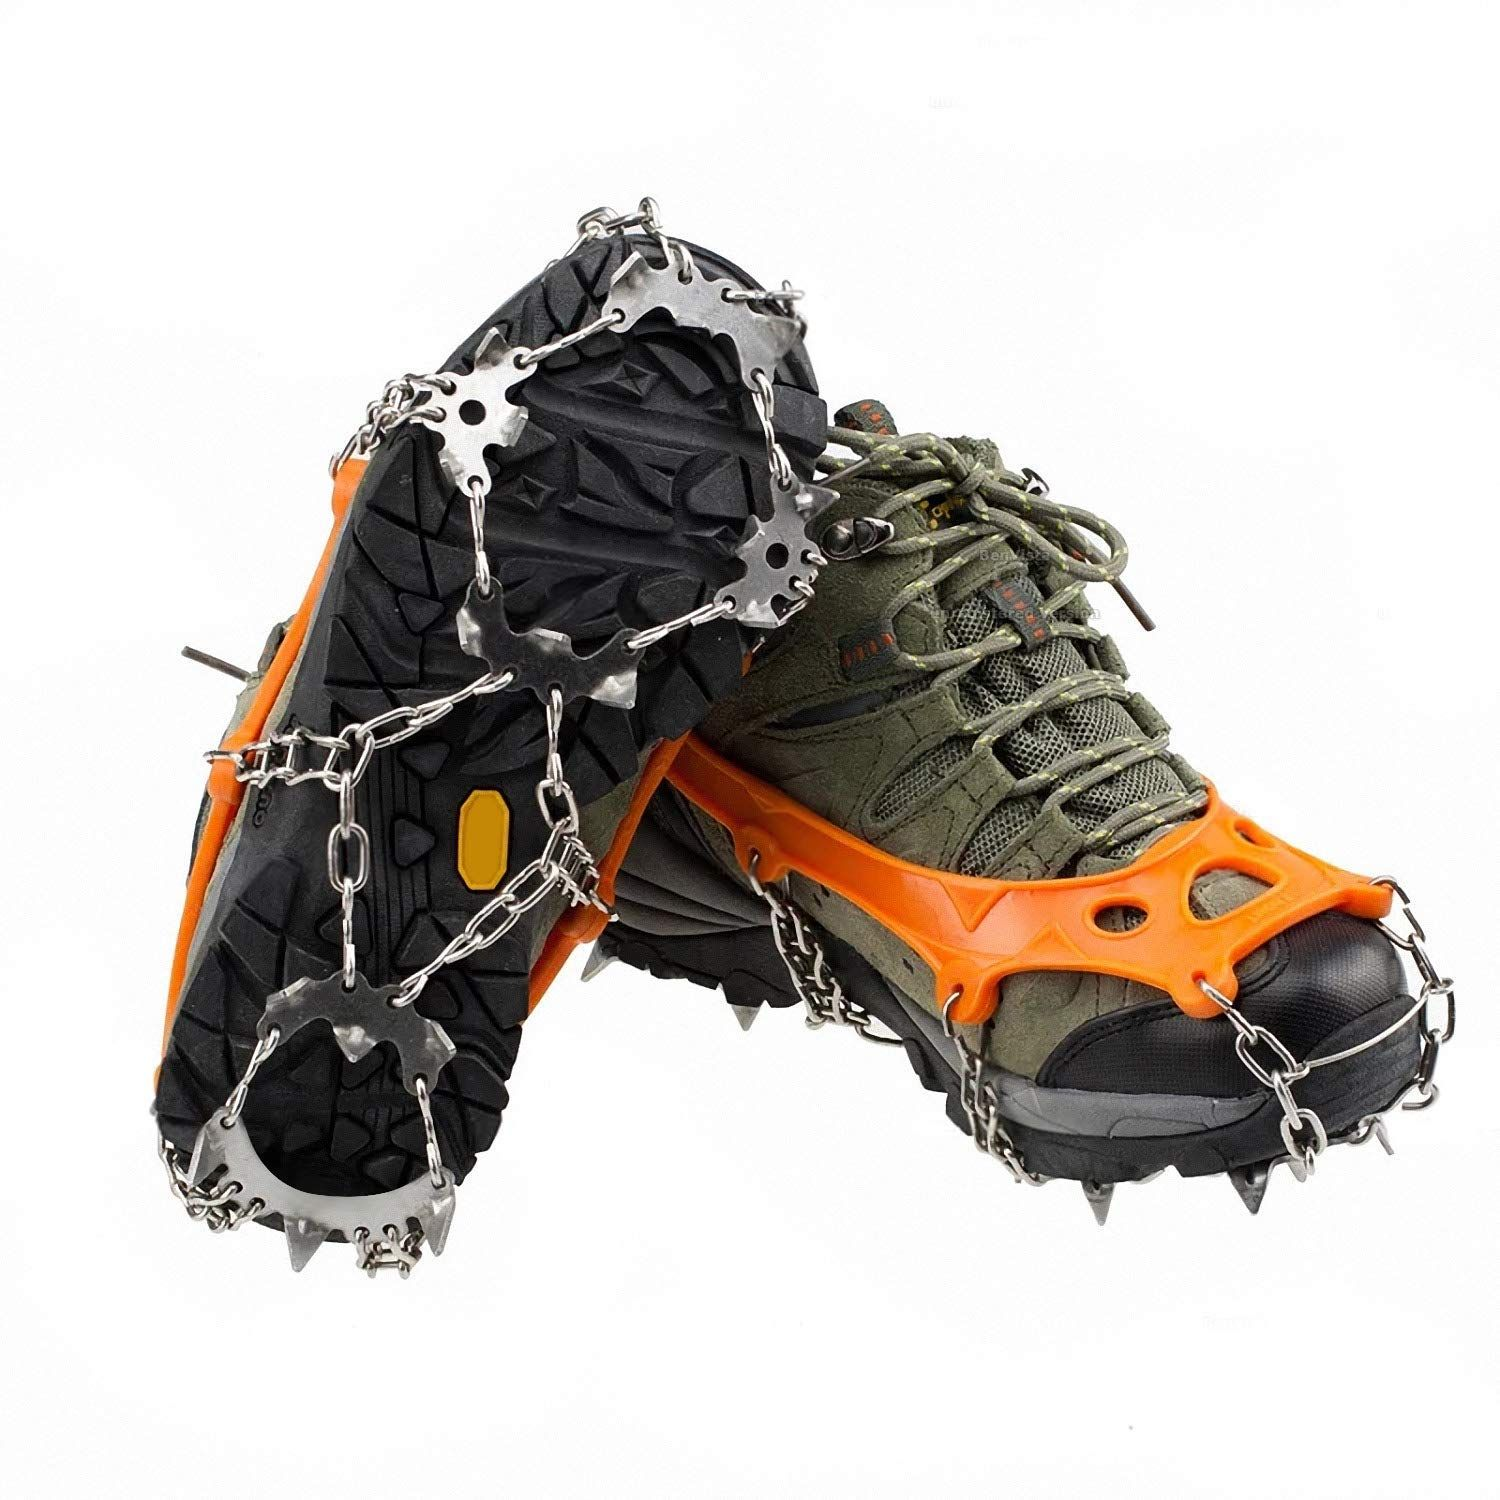 Ice Snow Crampons Cleats Anti-slip Shoes Spike Grip Boot Traction Grippers Hike